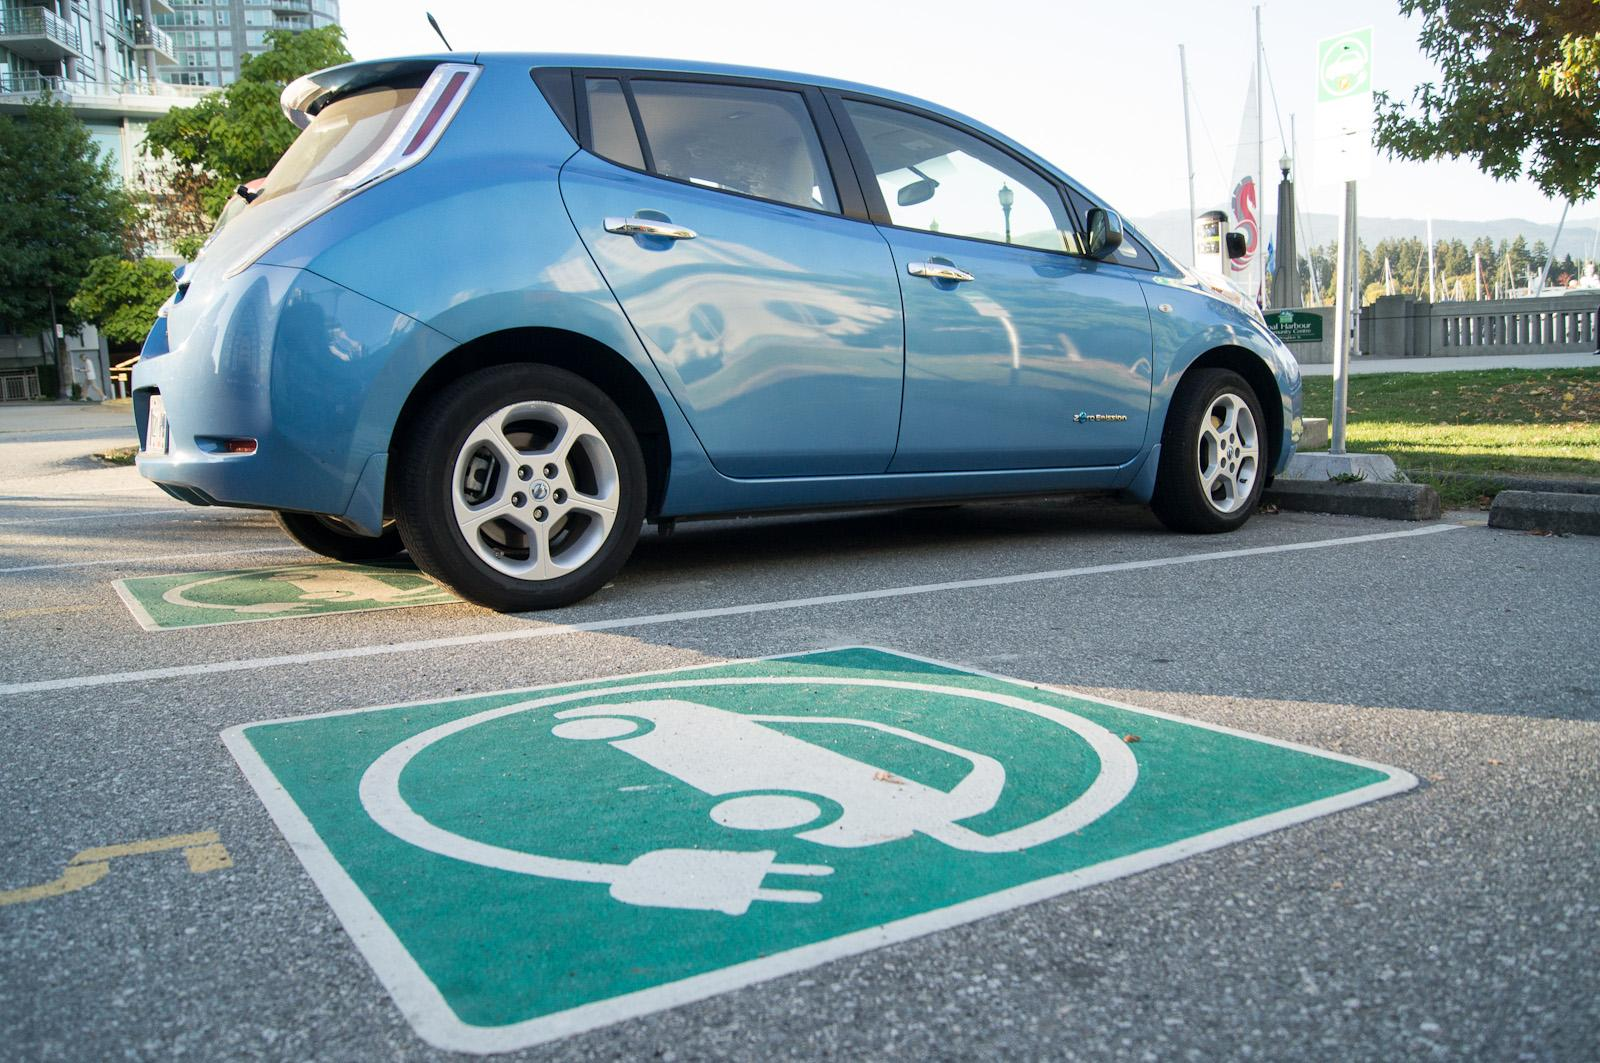 Germany Ready to Invest Heavily in Charging Stations for Electric Cars